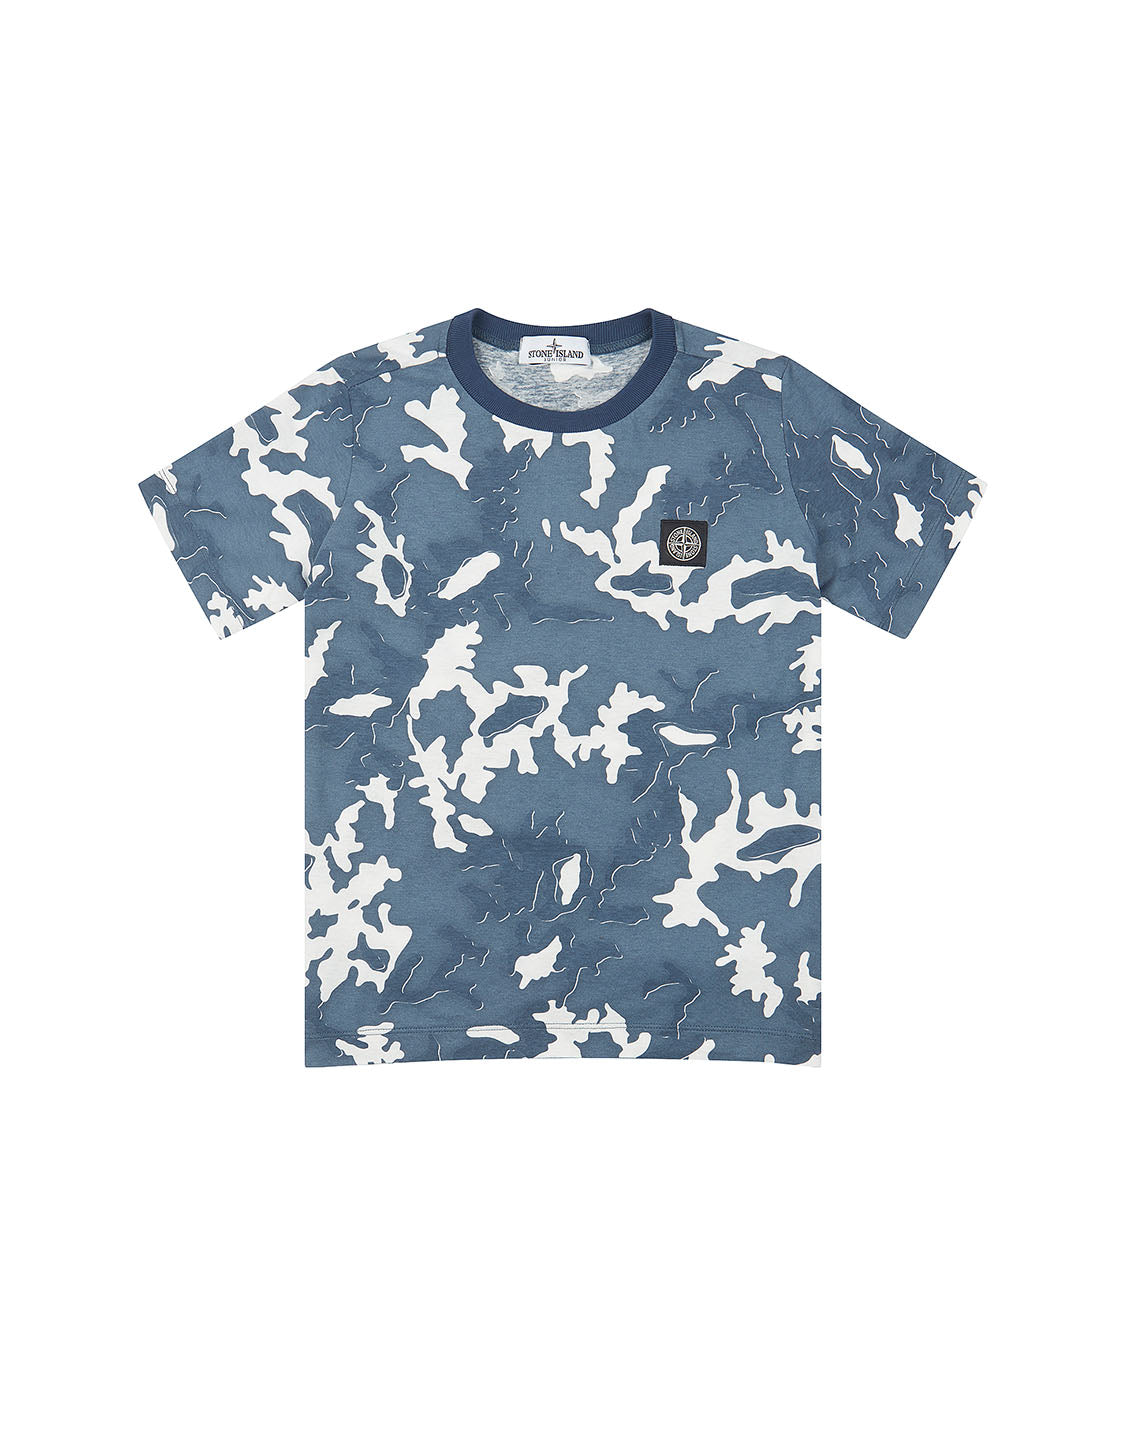 21650 CAMOUFLAGE T-Shirt in Navy Blue